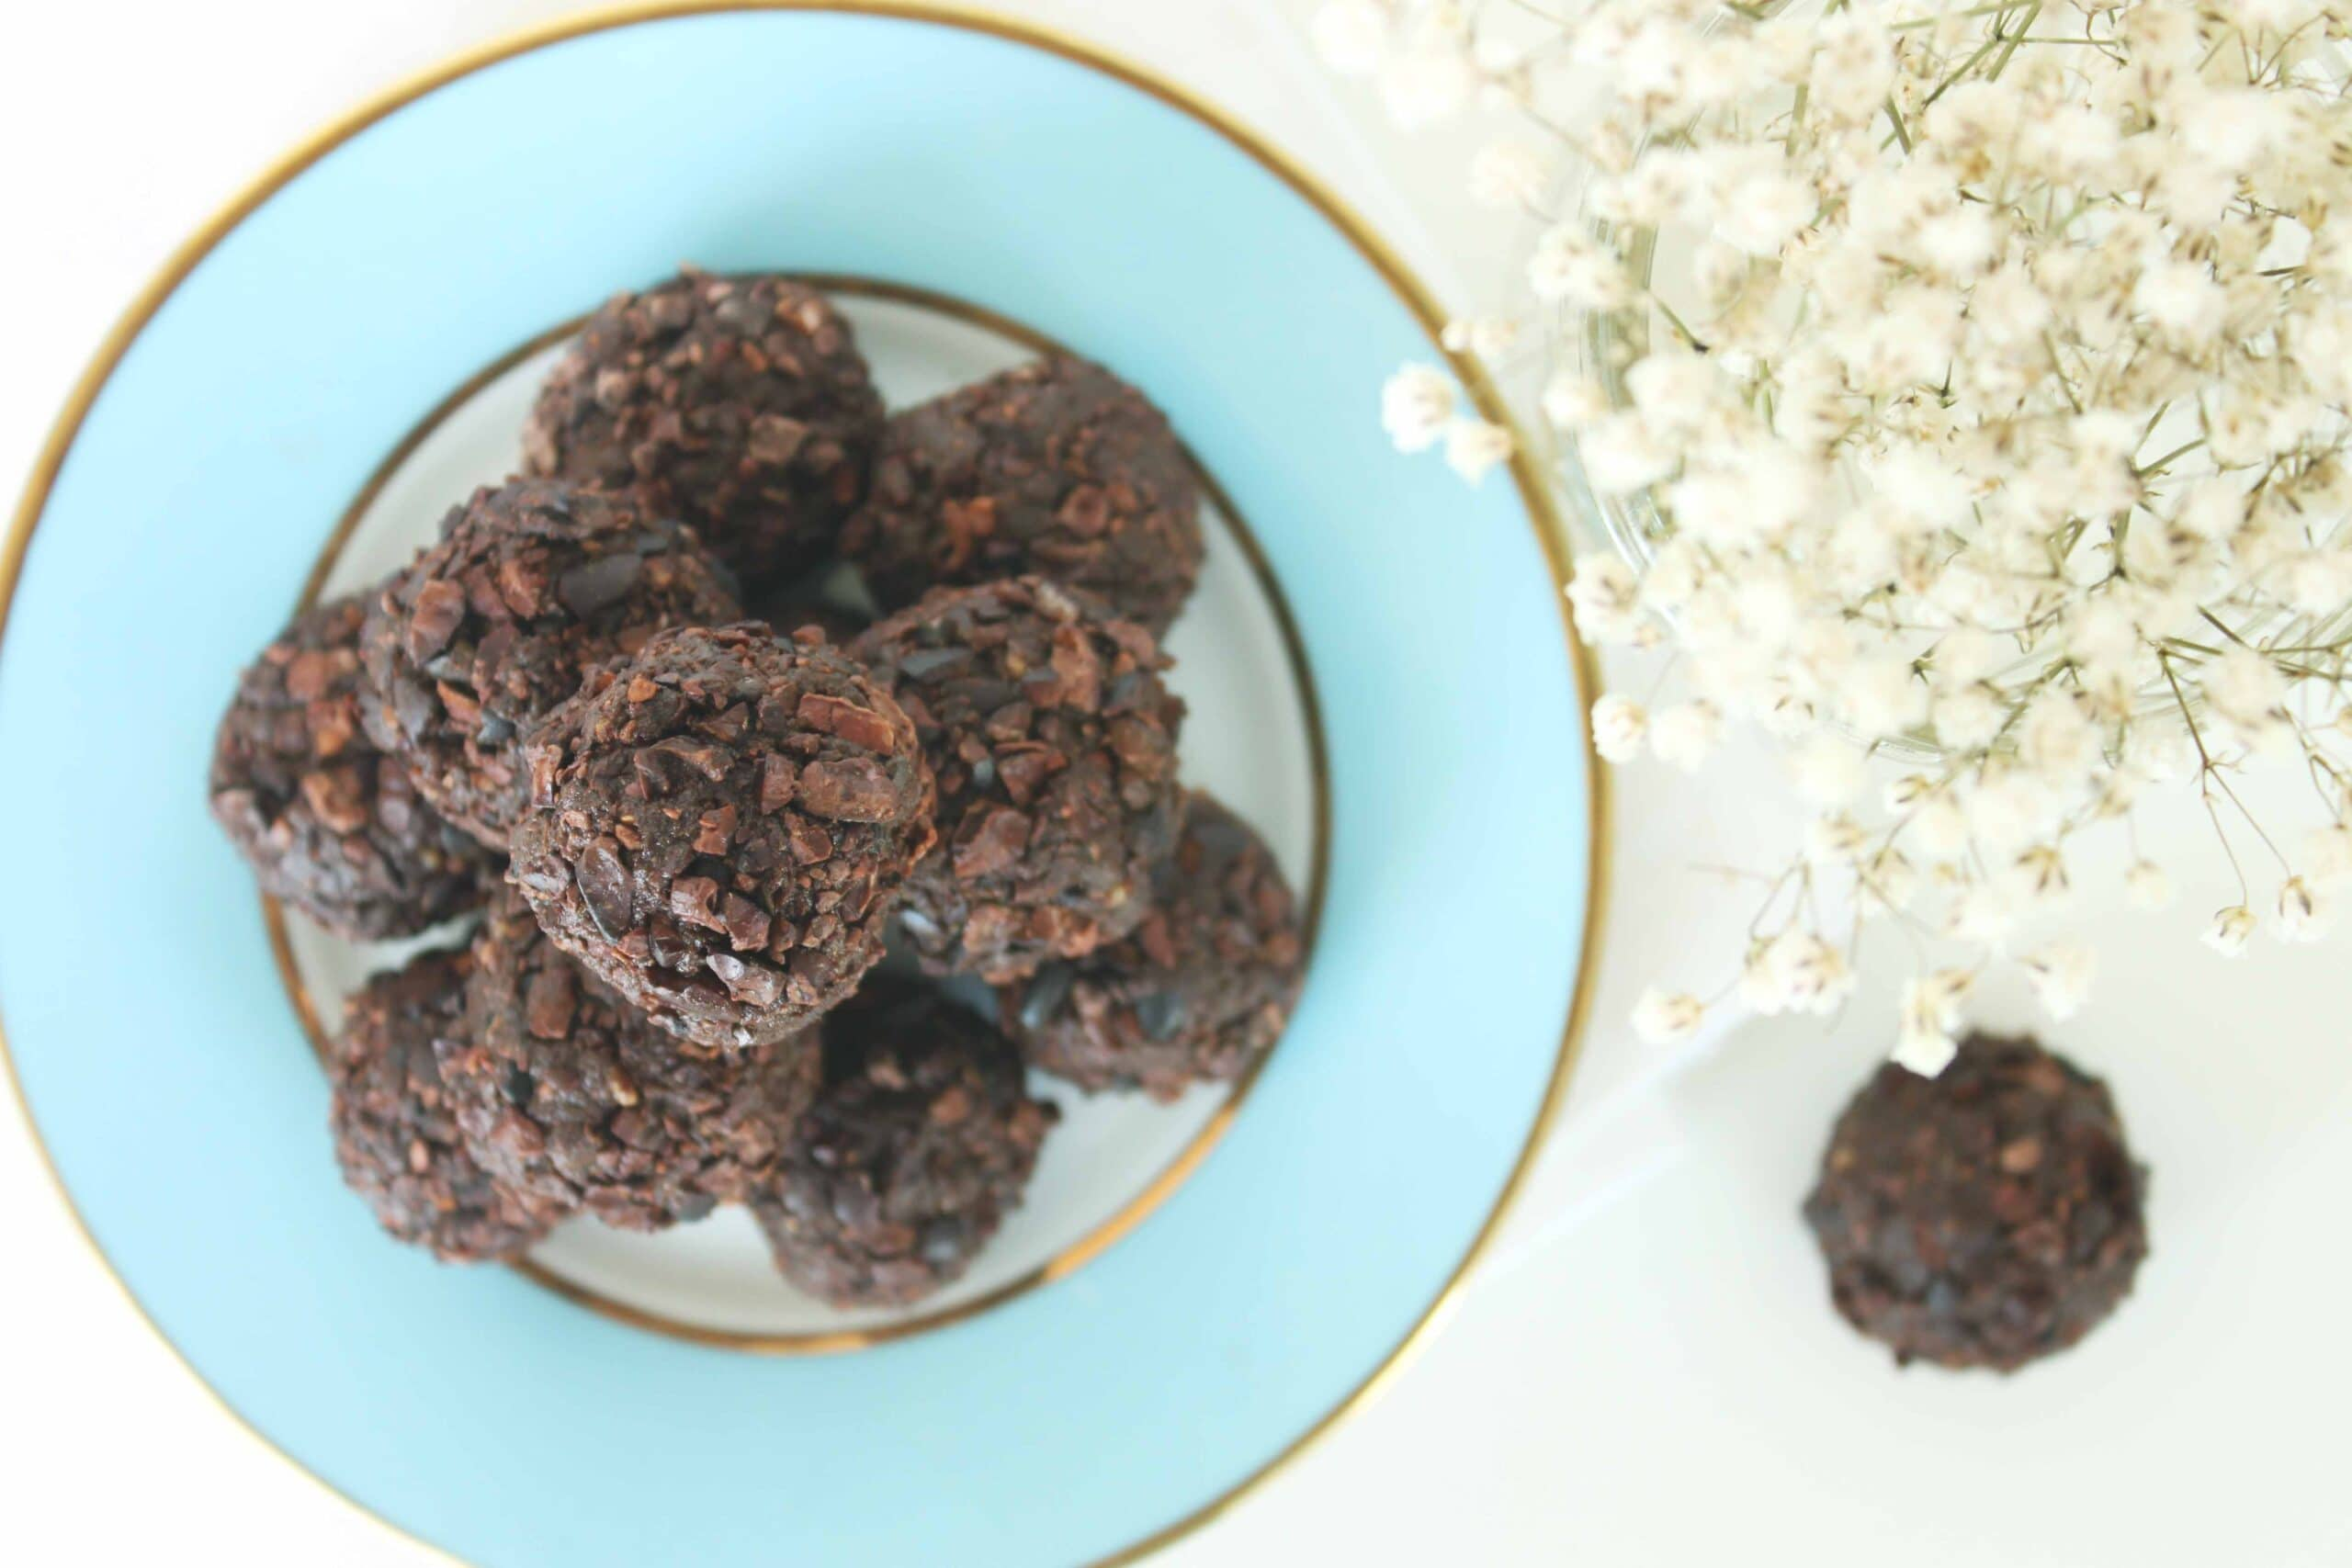 Healthy Chocolate Recipes - Superfood Choco Truffles #chocolate #truffles